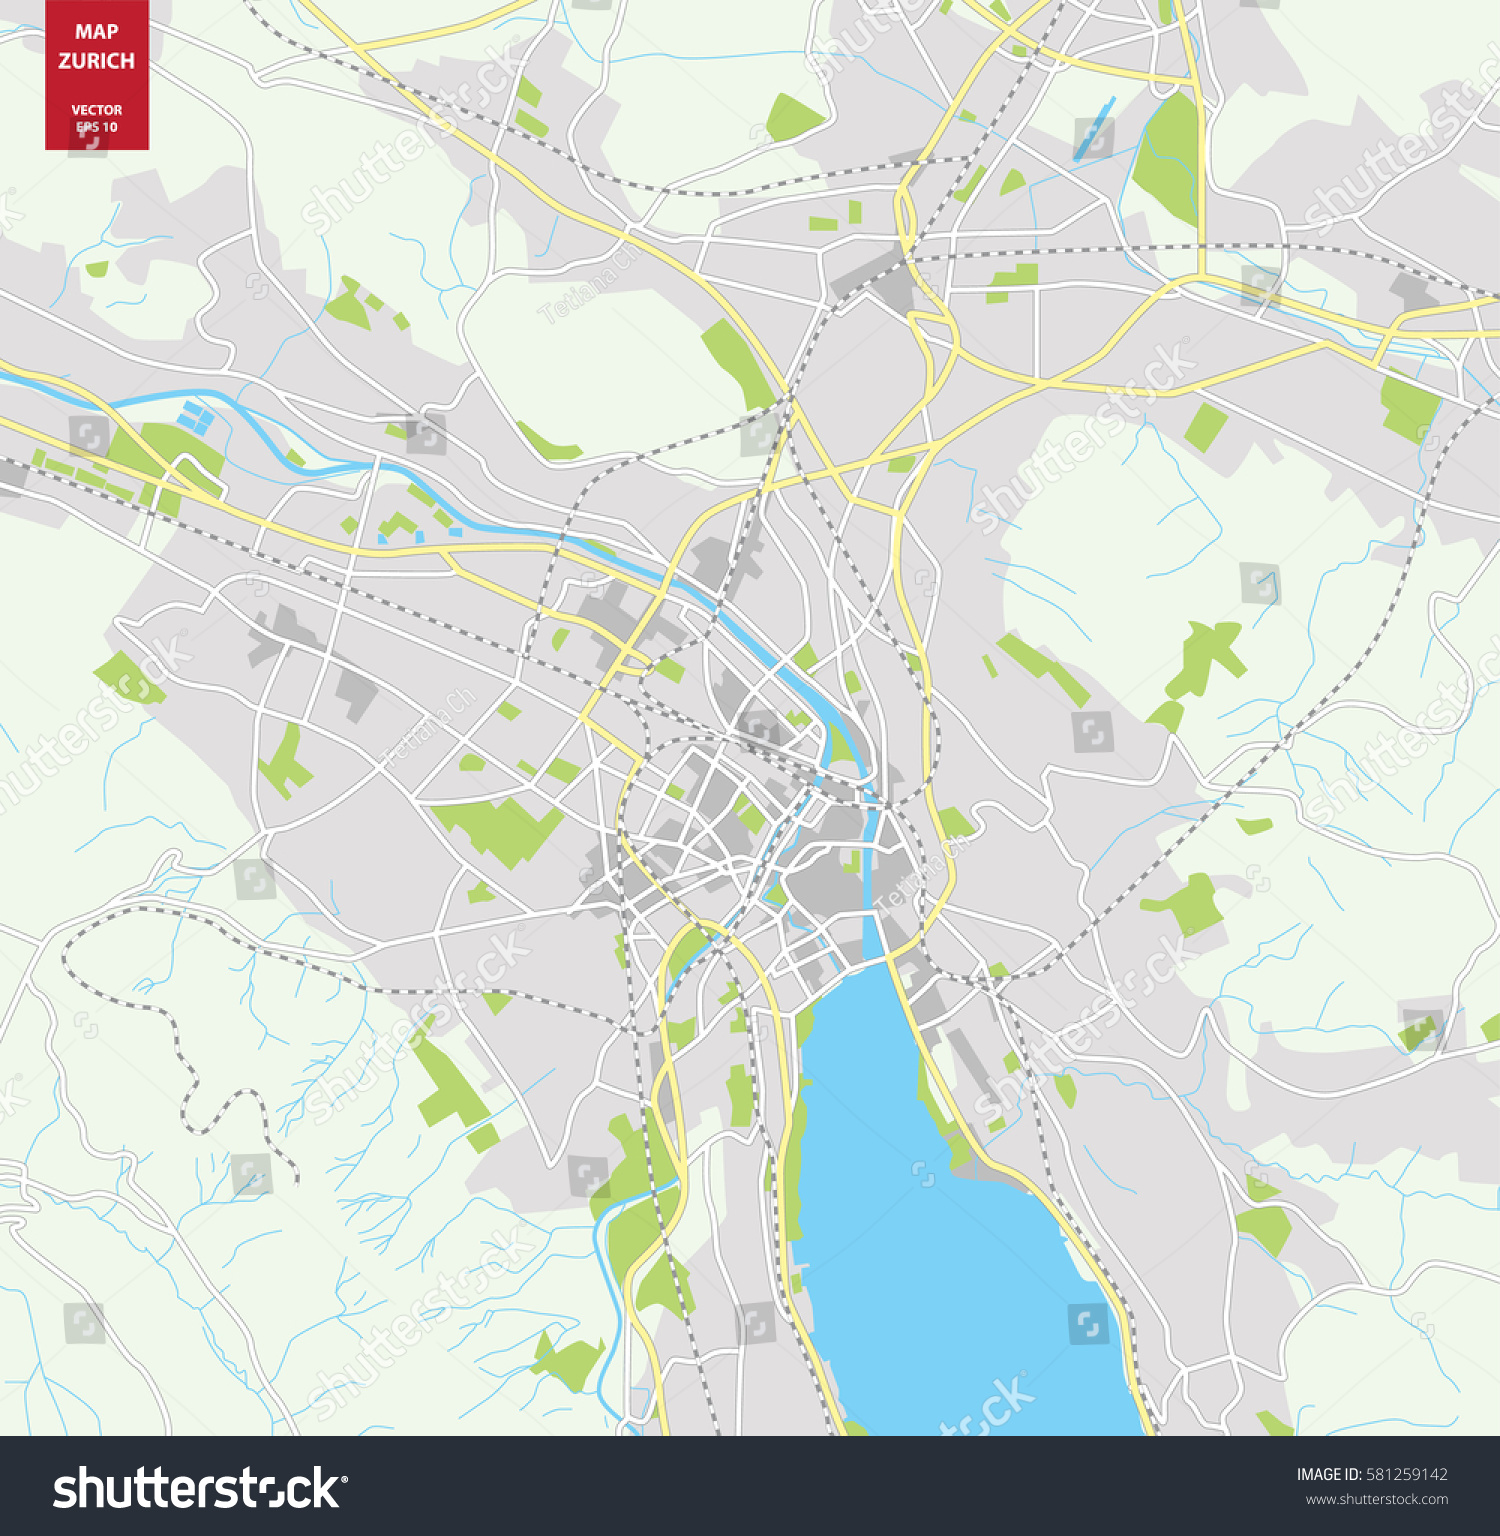 Vector color map zurich switzerland city stock photo photo vector vector color map of zurich switzerland city plan of zurich vector illustration gumiabroncs Gallery